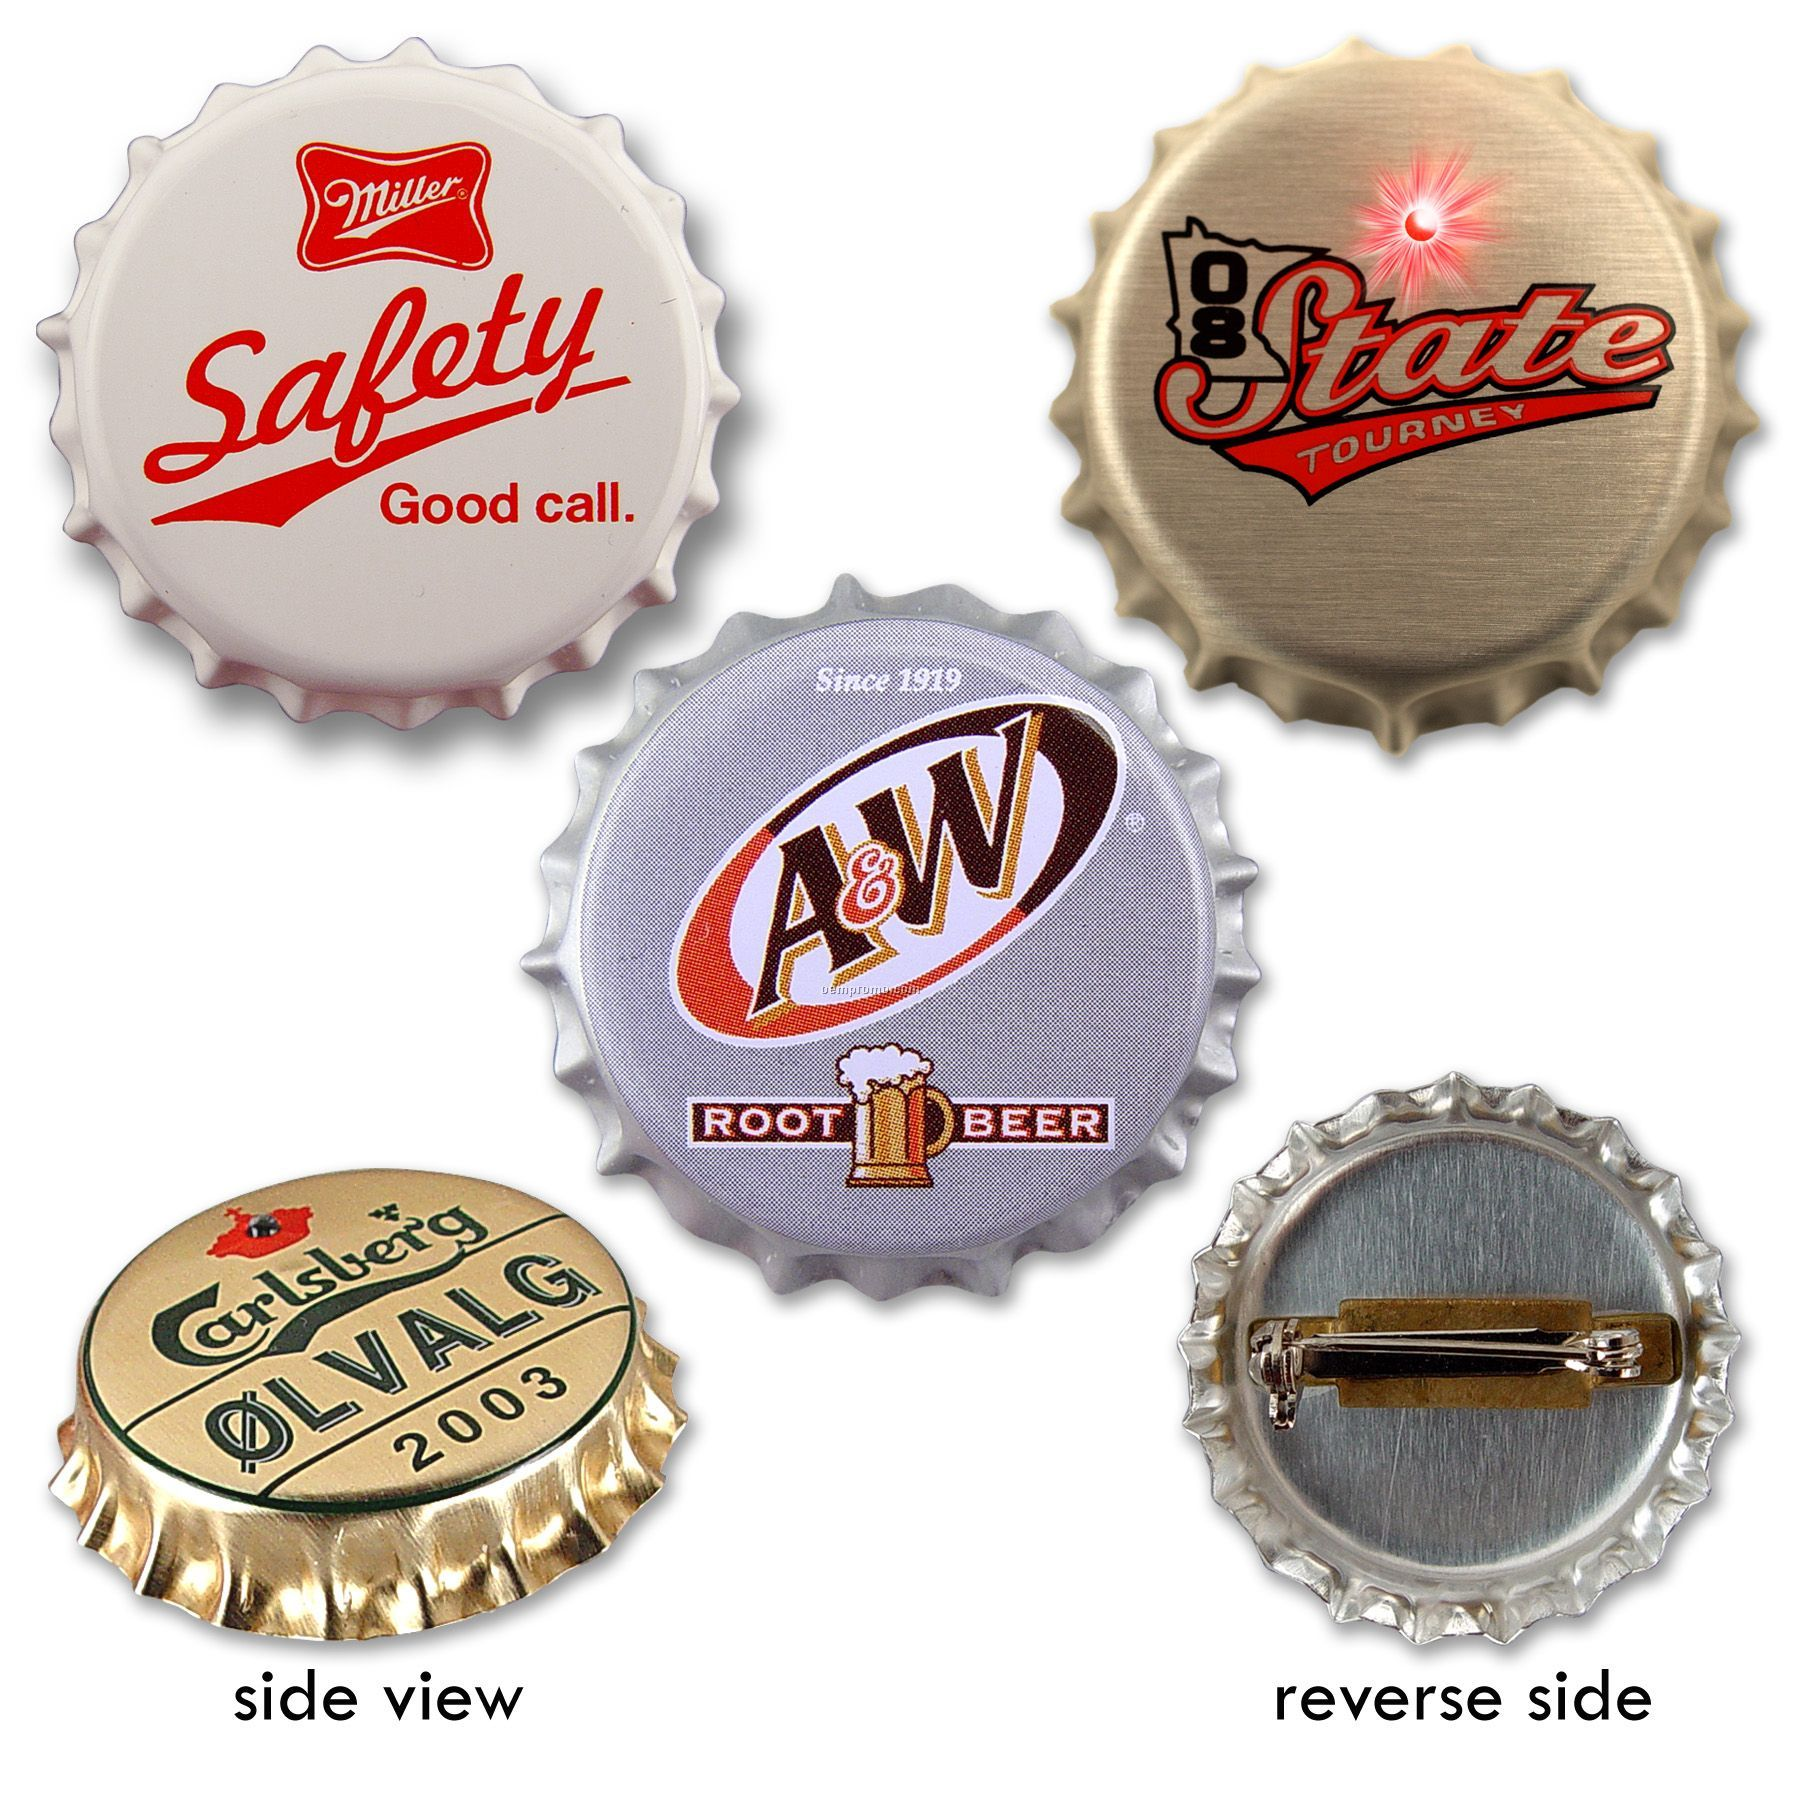 Bottle Cap Lapel Pin - 4-color Process Imprint